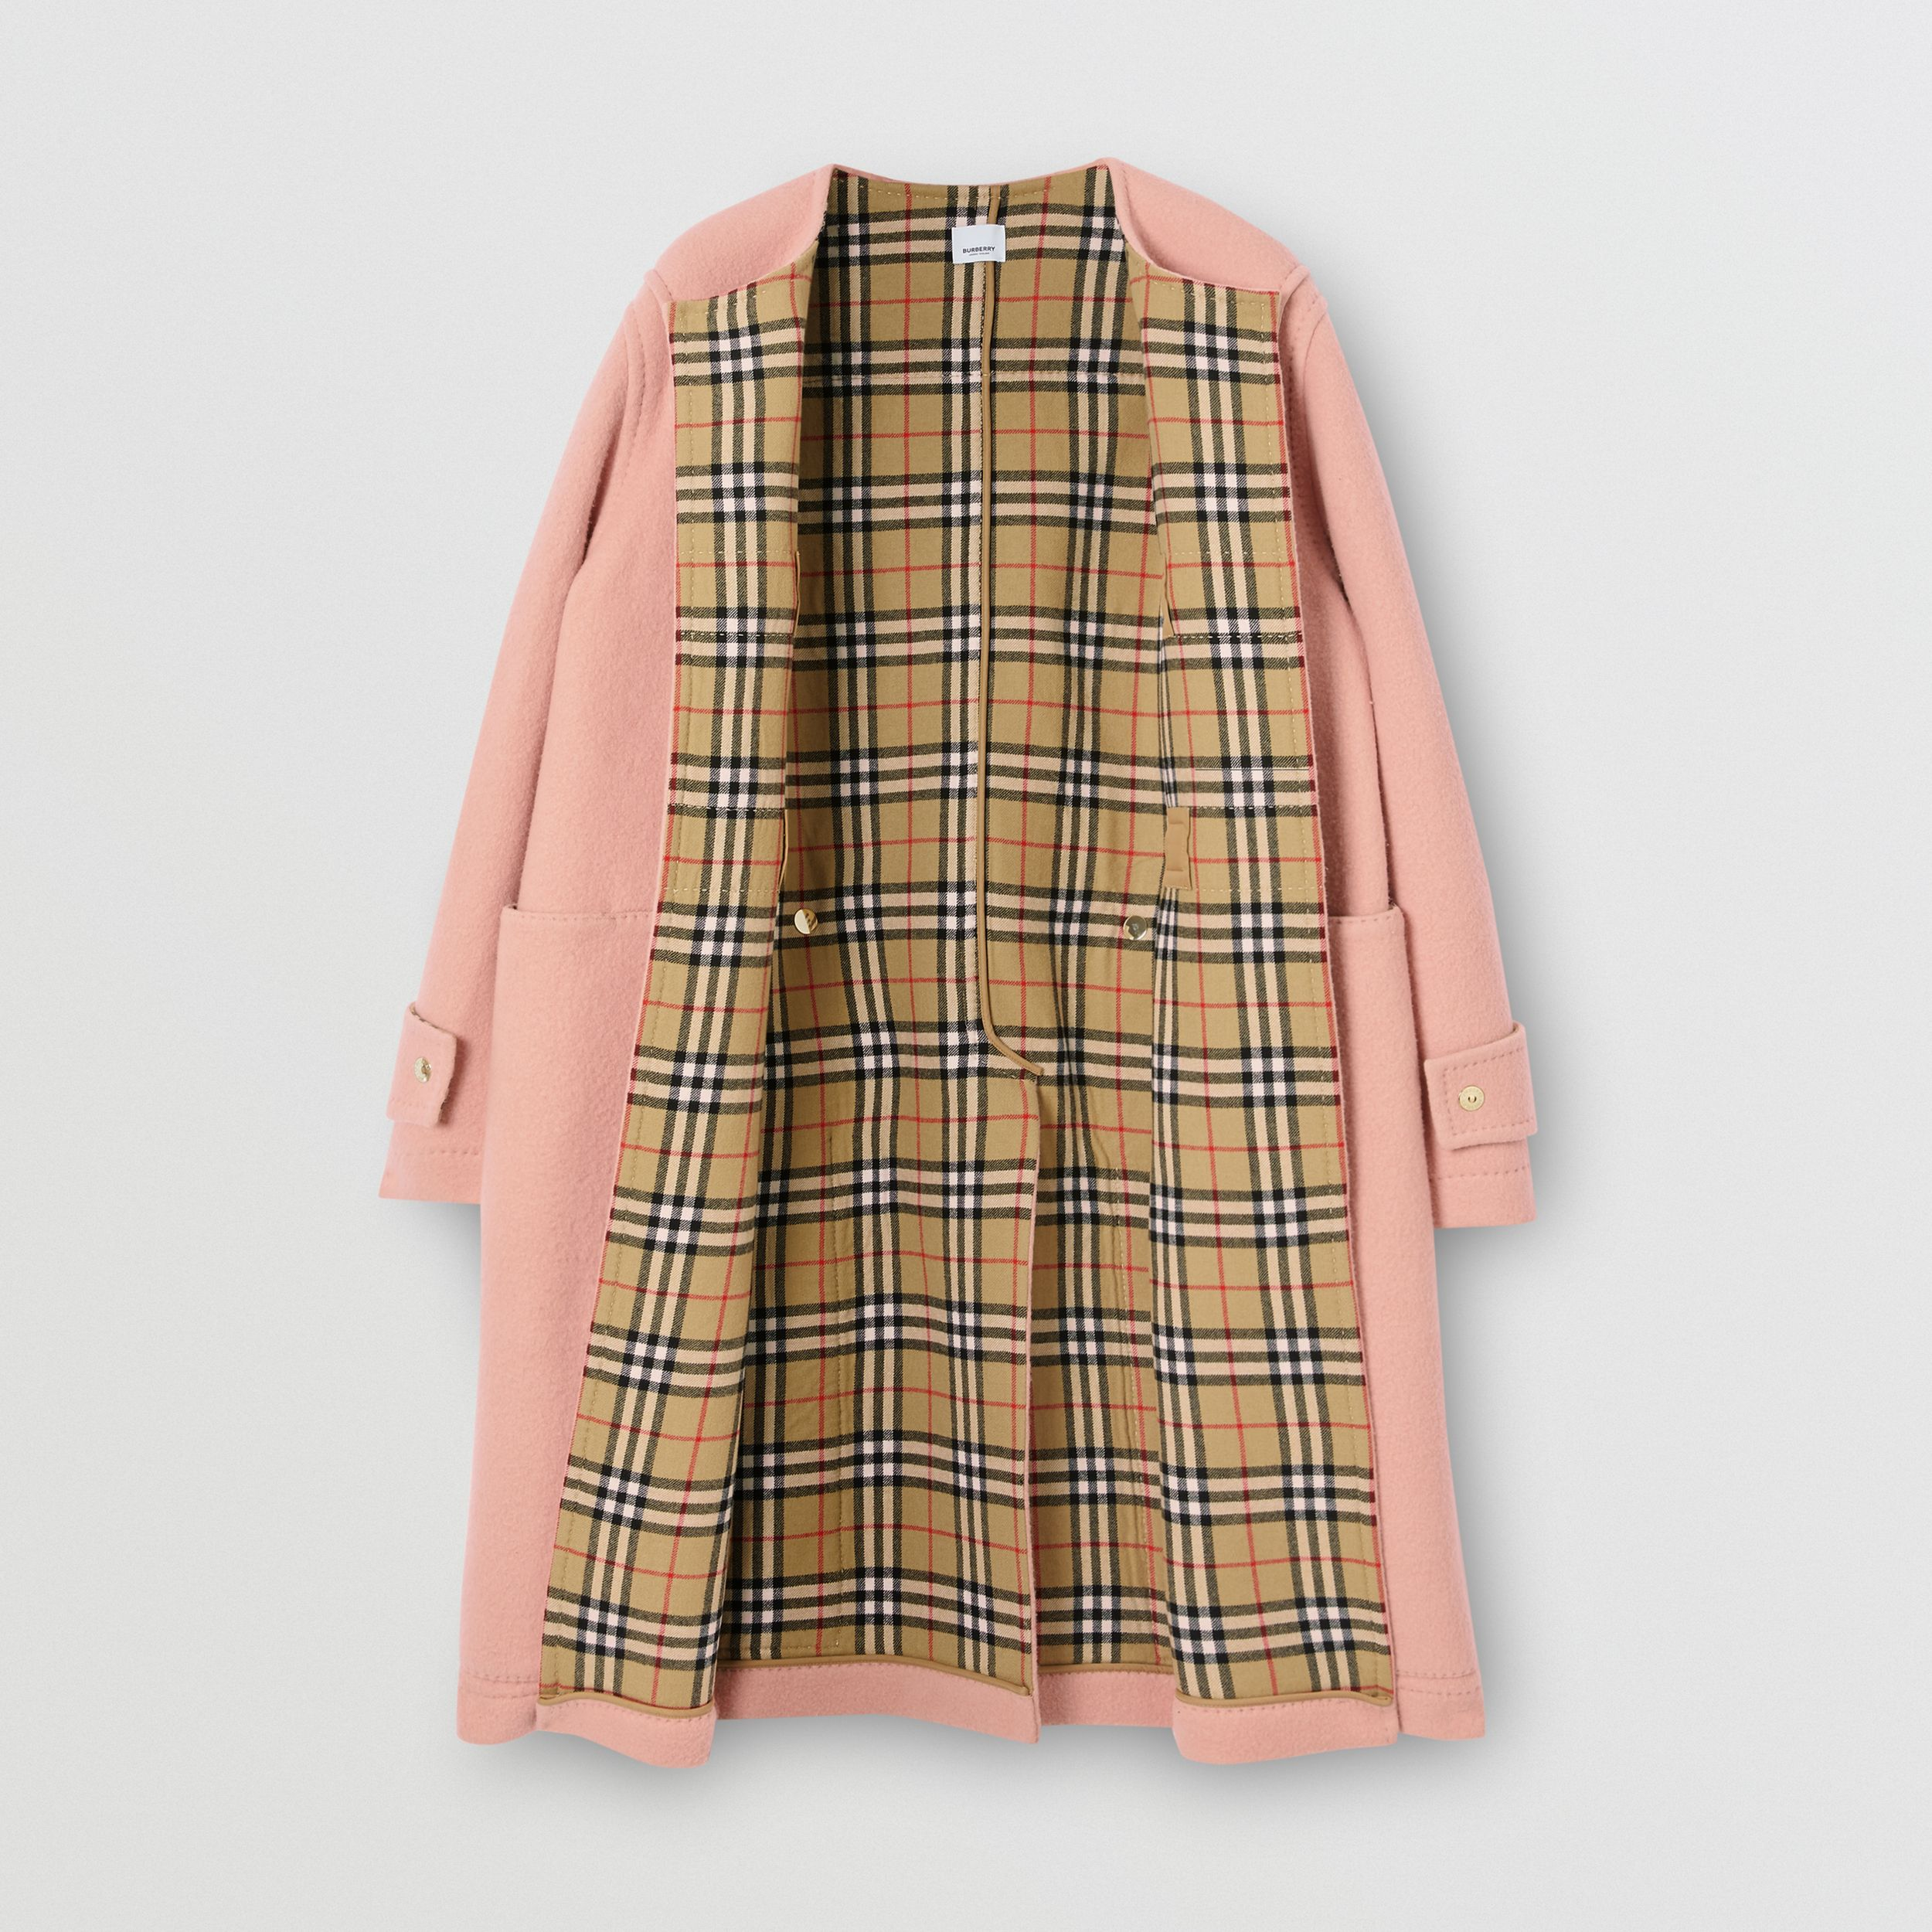 Vintage Check-lined Felted Wool Duffle Coat in Dusty Pink - Men | Burberry - 4